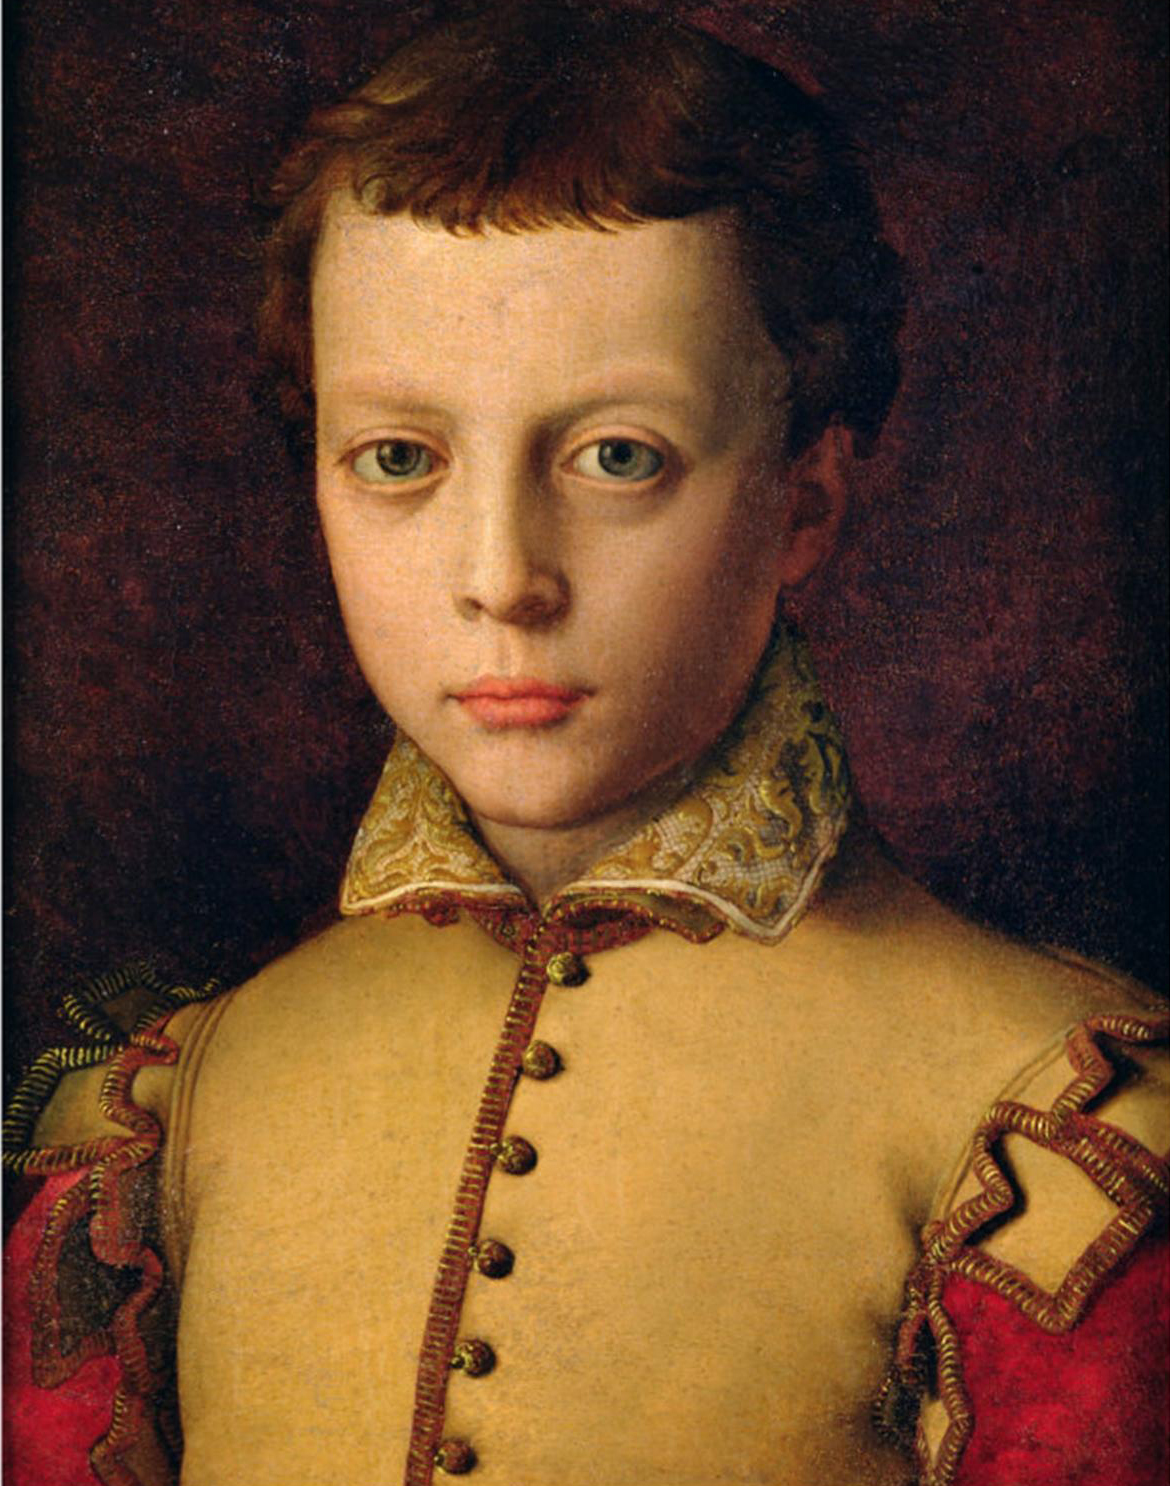 The Medici family was a political dynasty that lasted for over 200 years, producing nine leaders of the Republic of Florence, four popes of the Catholic Church, and numerous dukes of Florence and Tuscany. This portrait of Ferdinando de'Medici as a youth was painted by Agnolo Bronzino in about 1560. Court painter to the Medicis for much of his career, Bronzino is known for the care he took in portraying his wealthy patrons' costumes. In this painting, Ferdinando's garment looks almost three-dimensional—as if you could feel the texture of the satin and velvet. Later in life, Ferdinando became the Grand Duke of Tuscany. (Image via Wikimedia Commons)